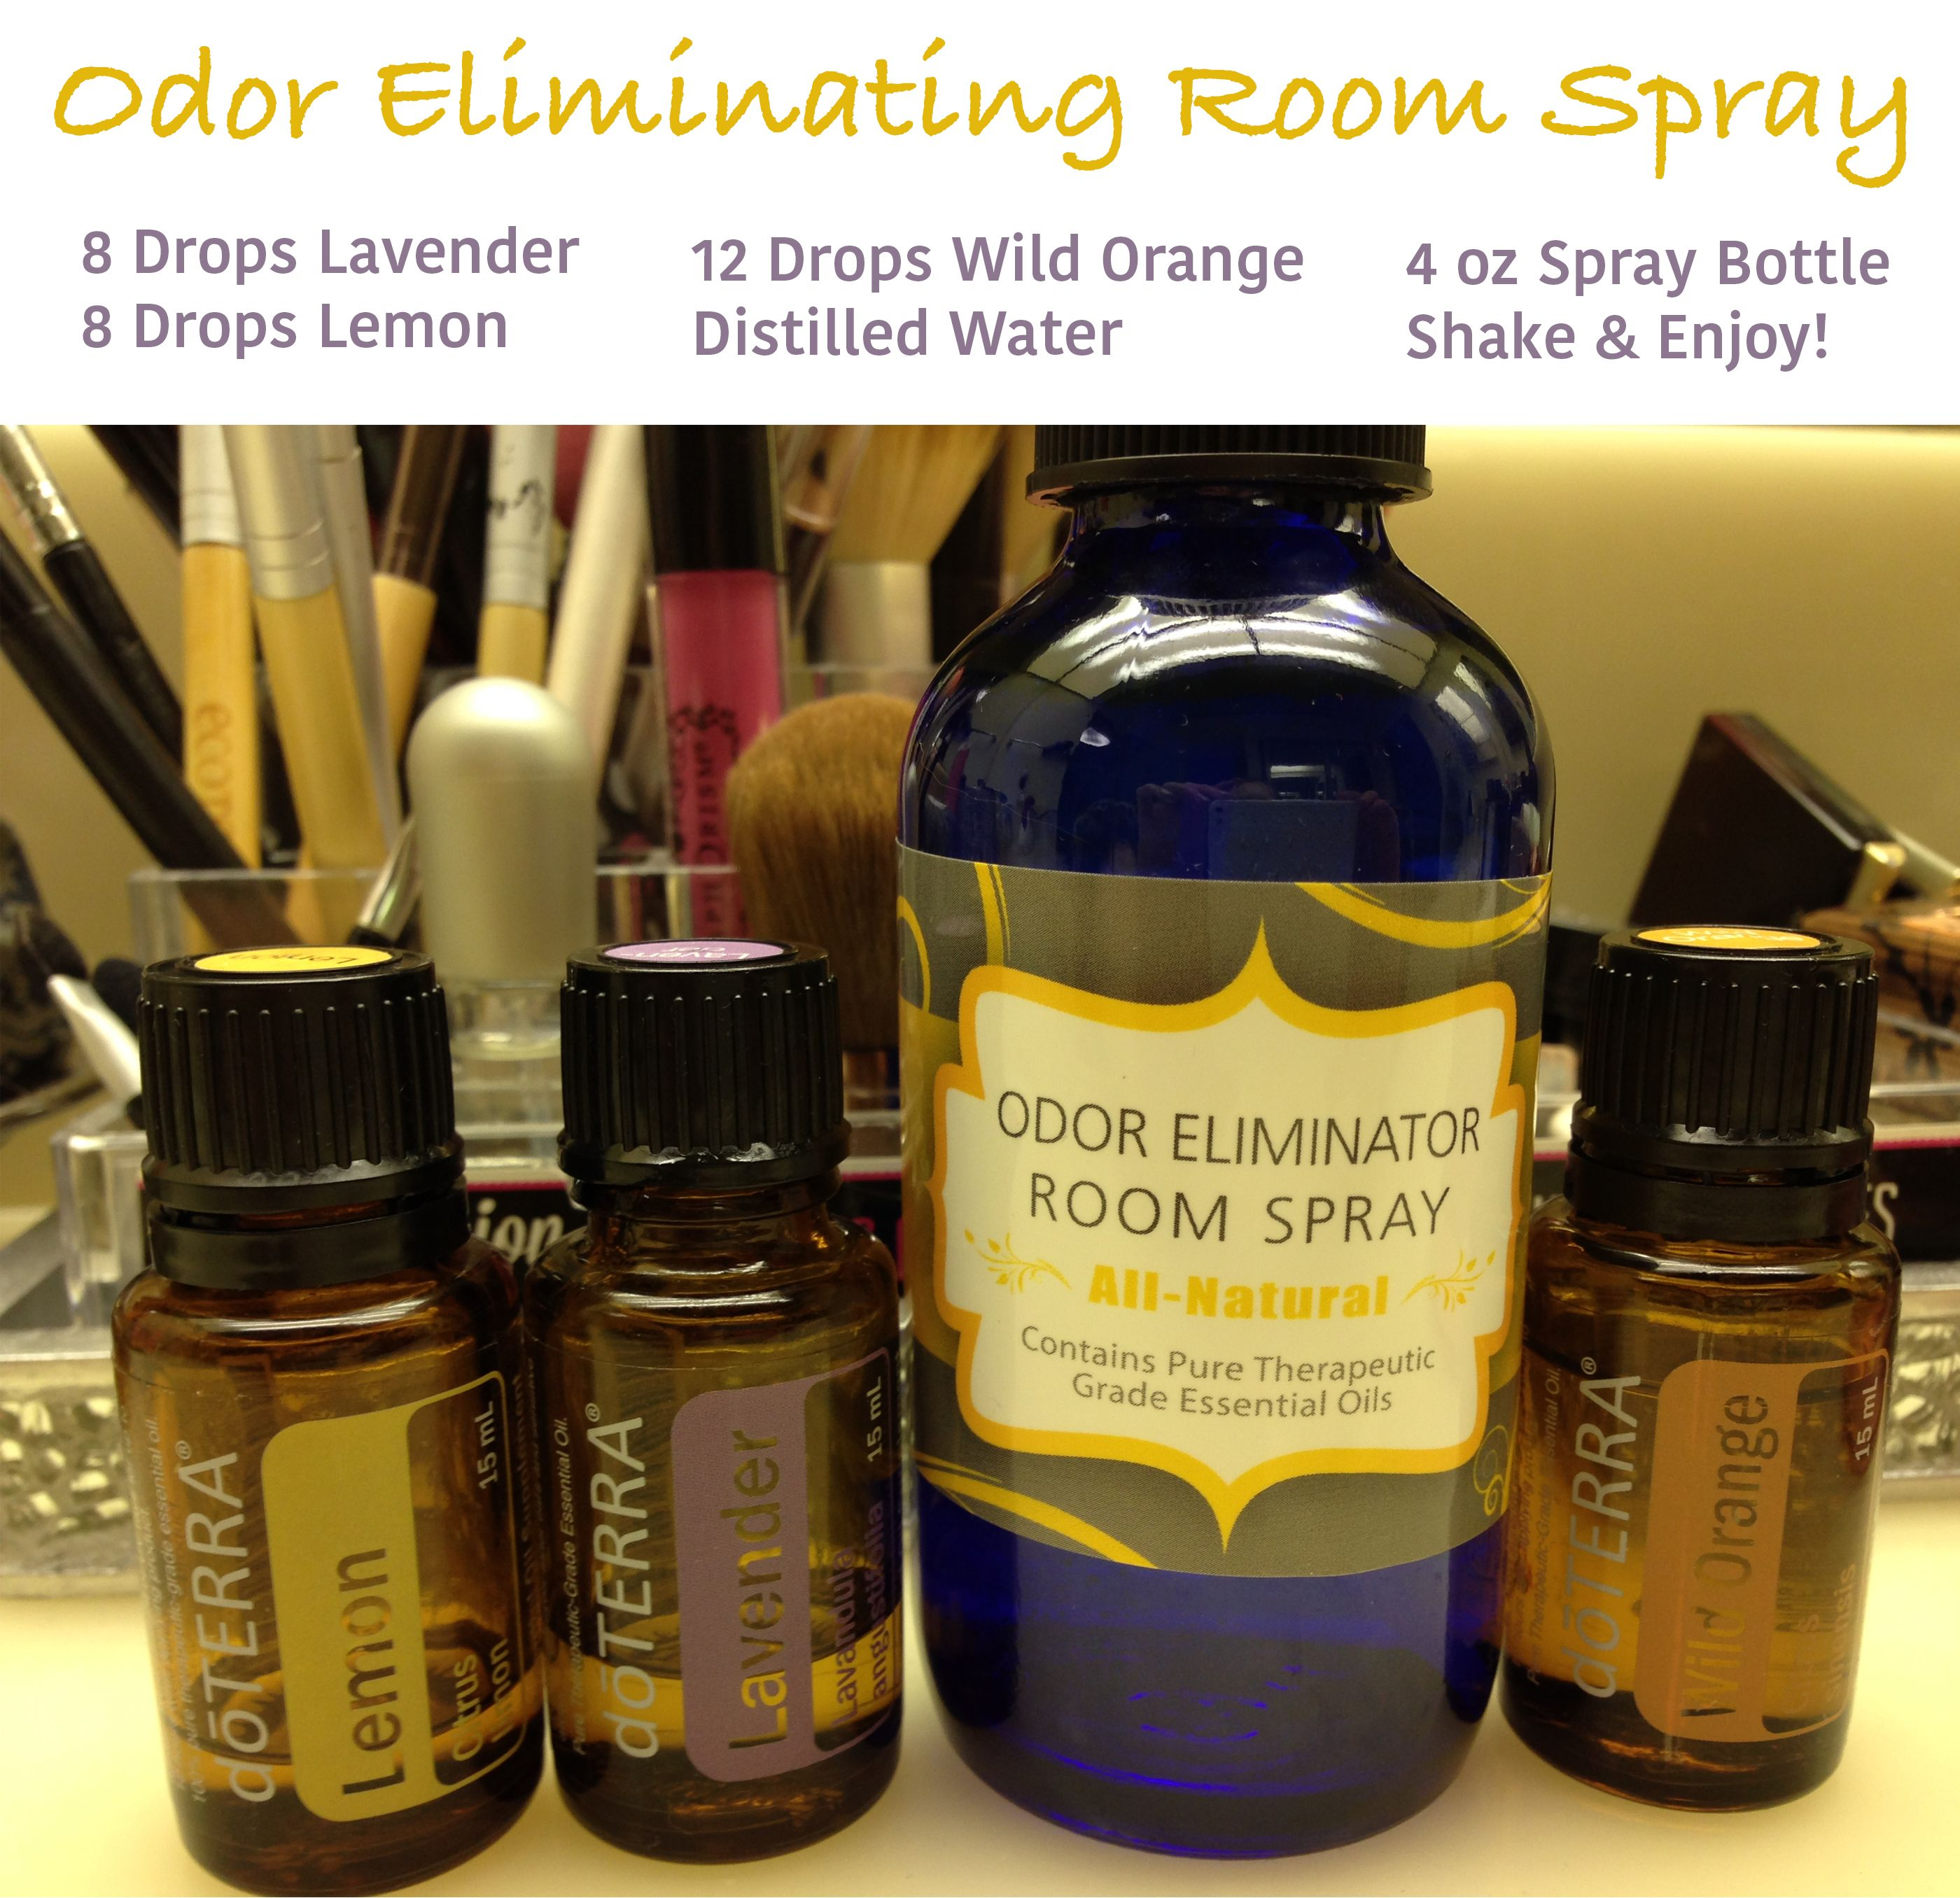 DIY Room Odor Eliminator With DoTERRA Essential Oils Great For - Bathroom odor